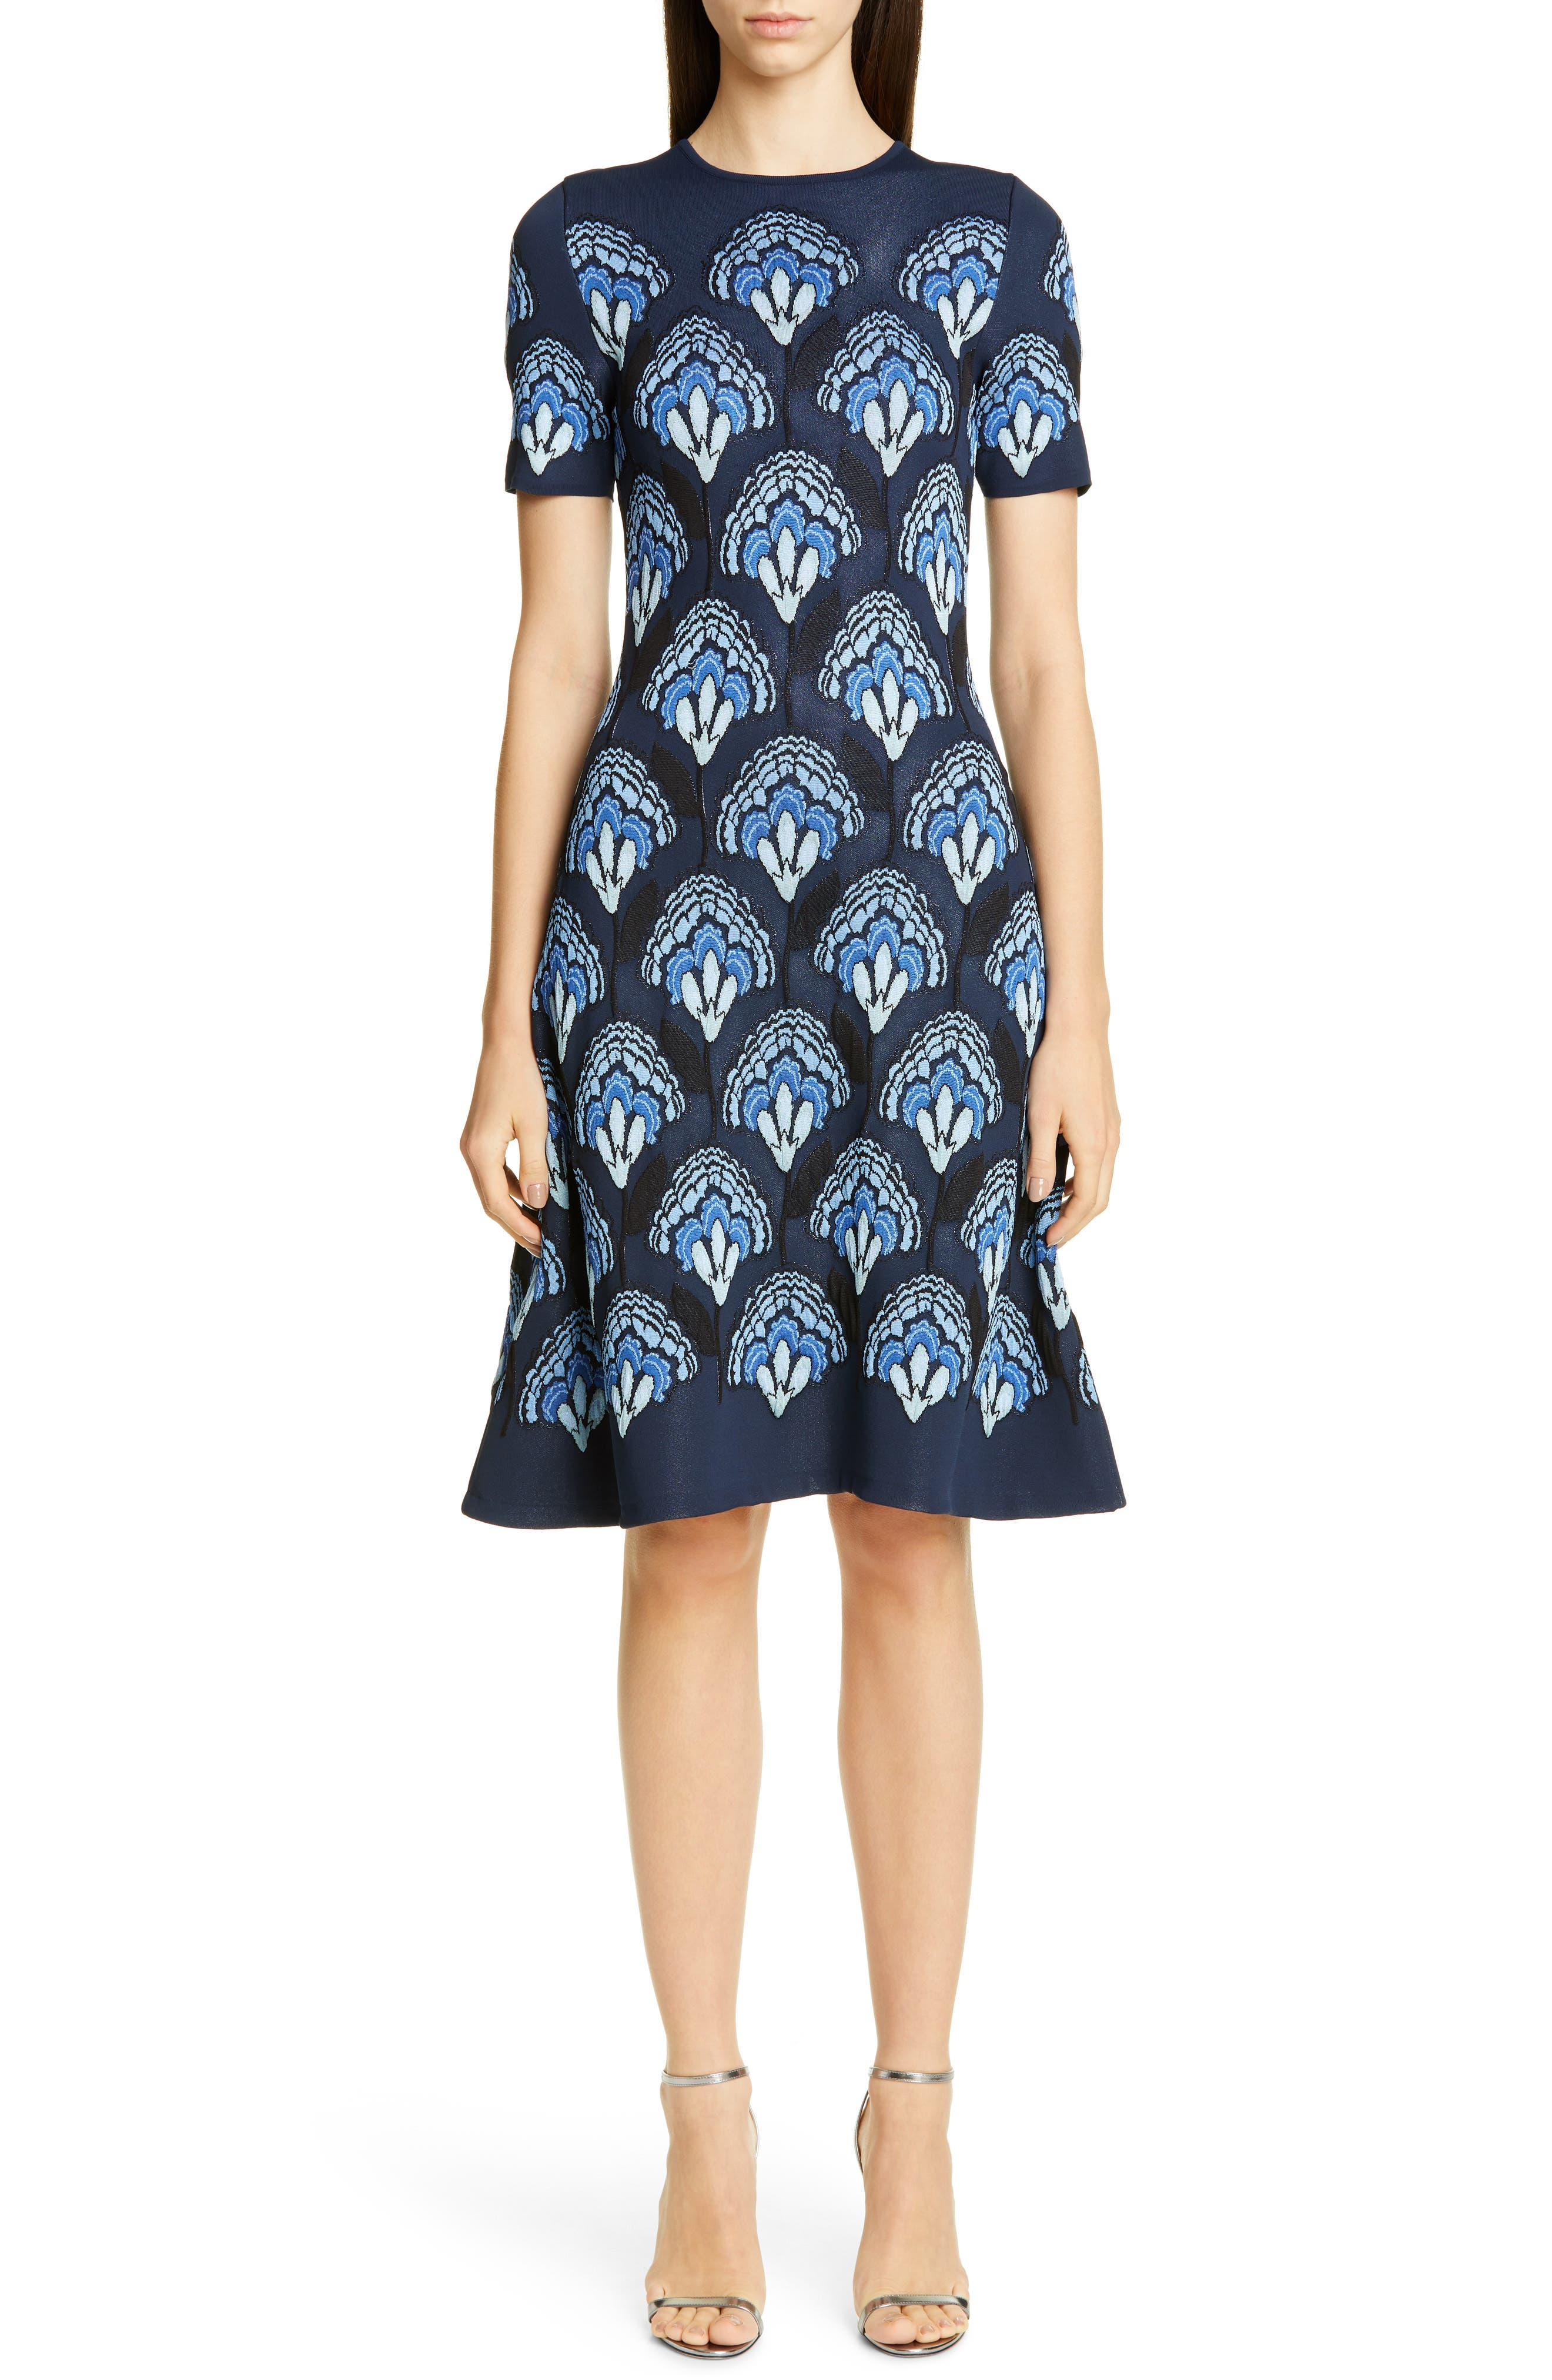 Carolina Herrera Floral Jacquard Knit Dress, Blue